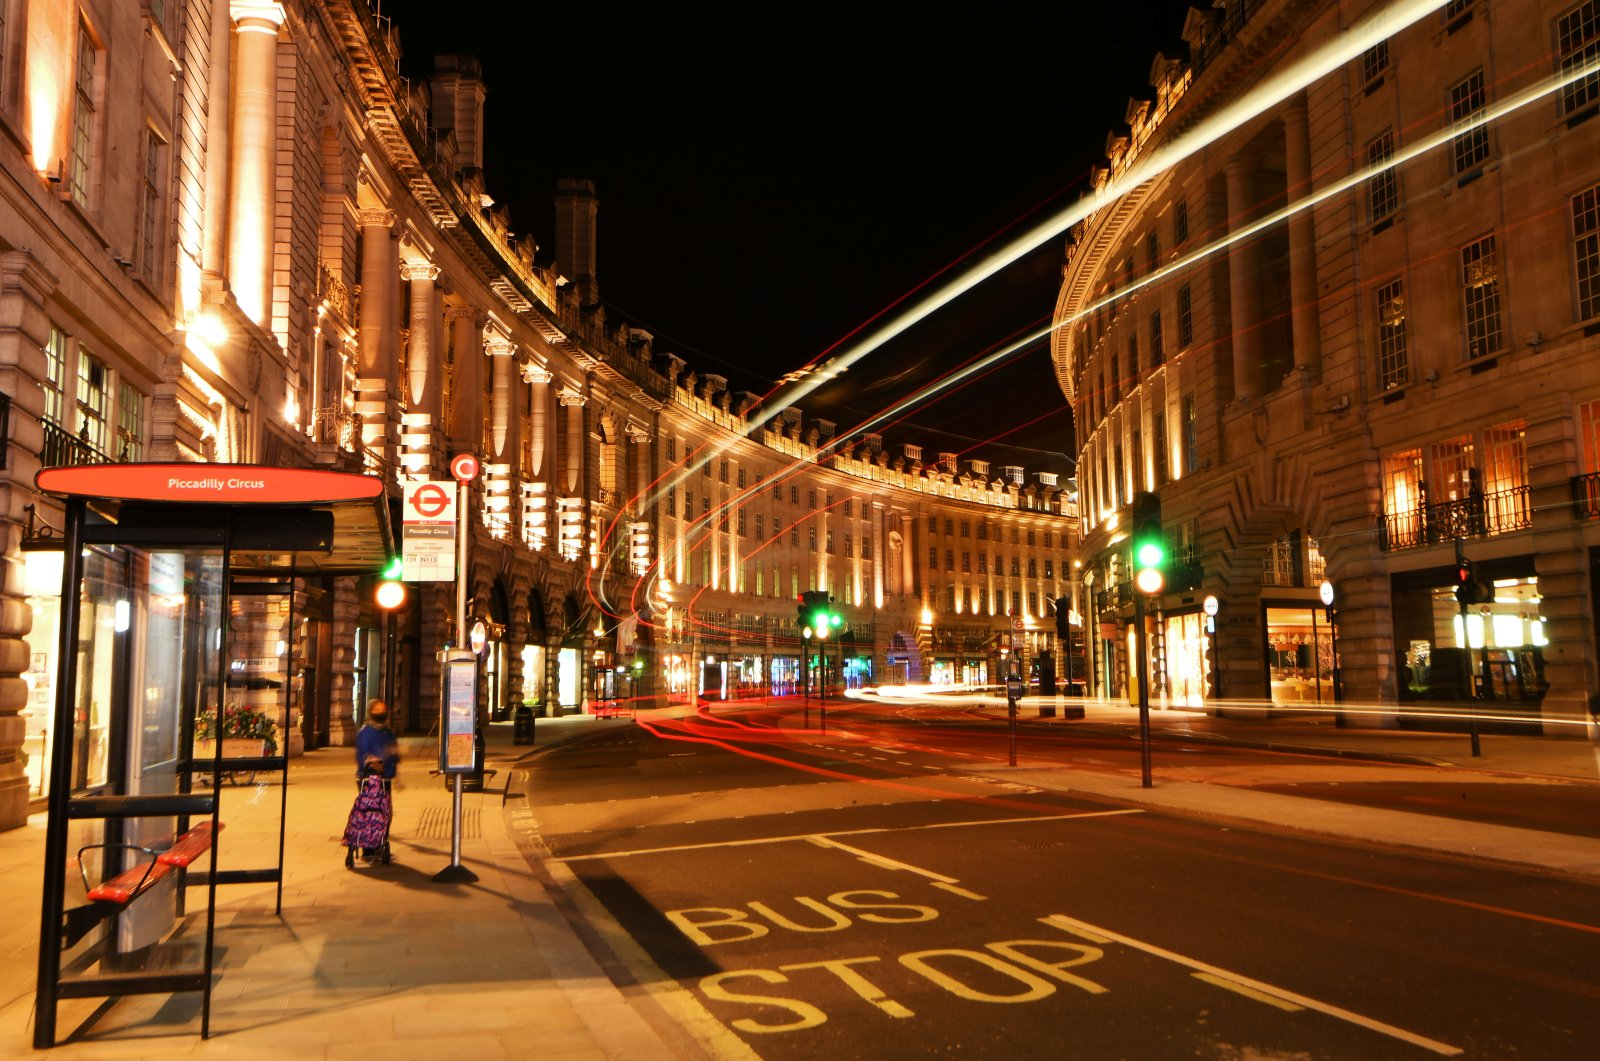 A woman waits for a bus on a quiet Regents Street during the late evening, as the city at night is deserted like never before while the coronavirus disease (COVID-19) lockdown continues, in London, Britain April 21, 2020. (Reuters Photo)